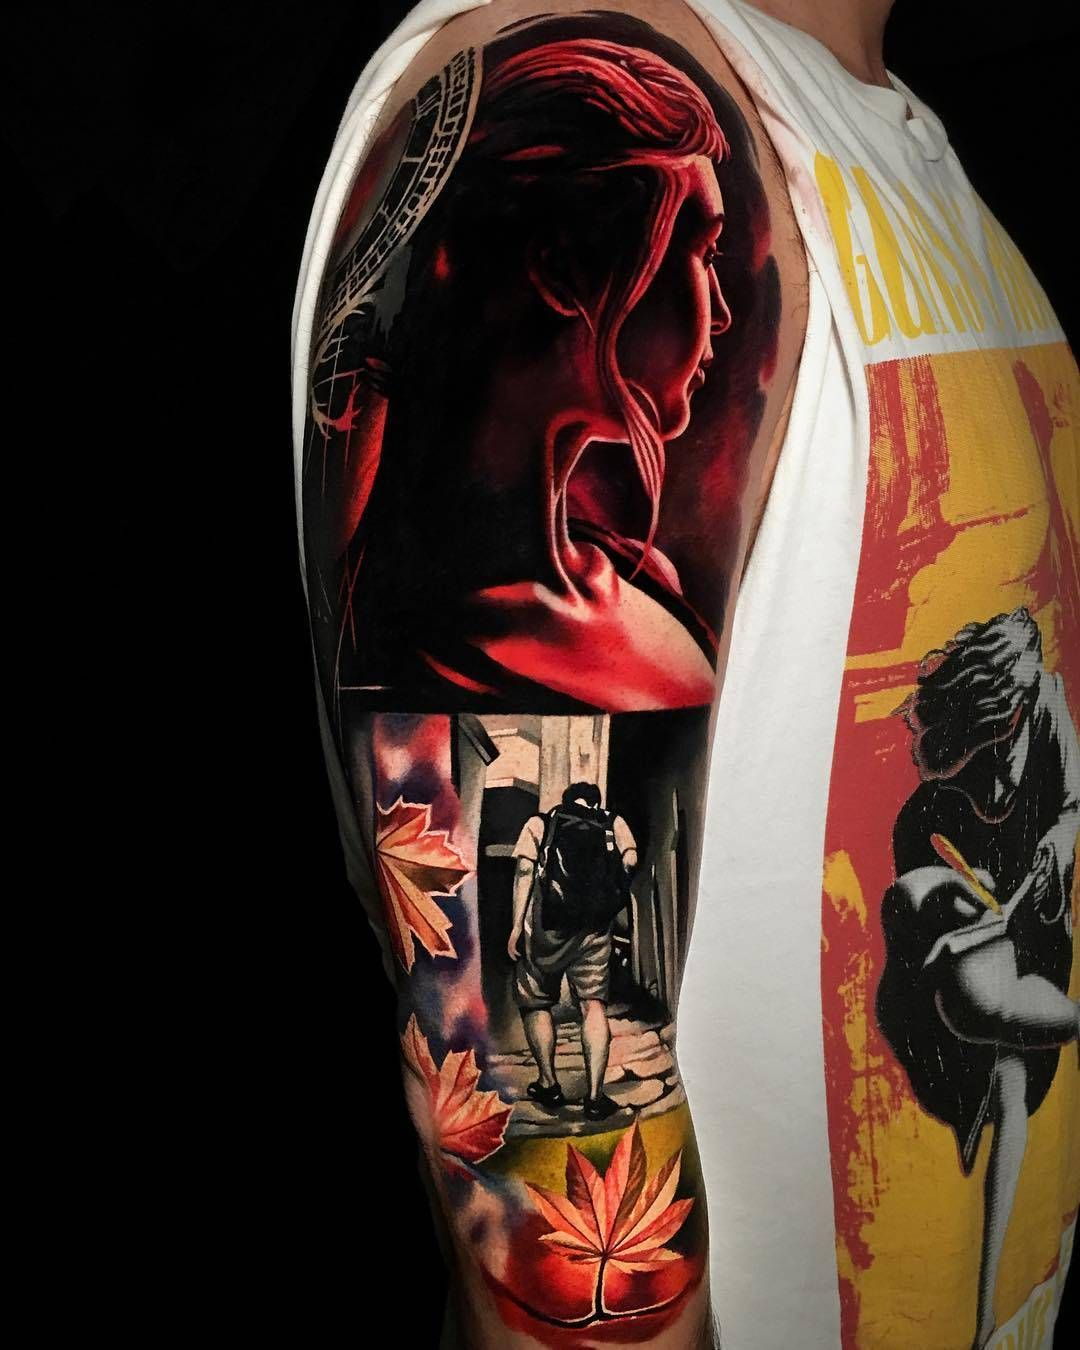 Collage in tattoos by emanuel oliveira world famous